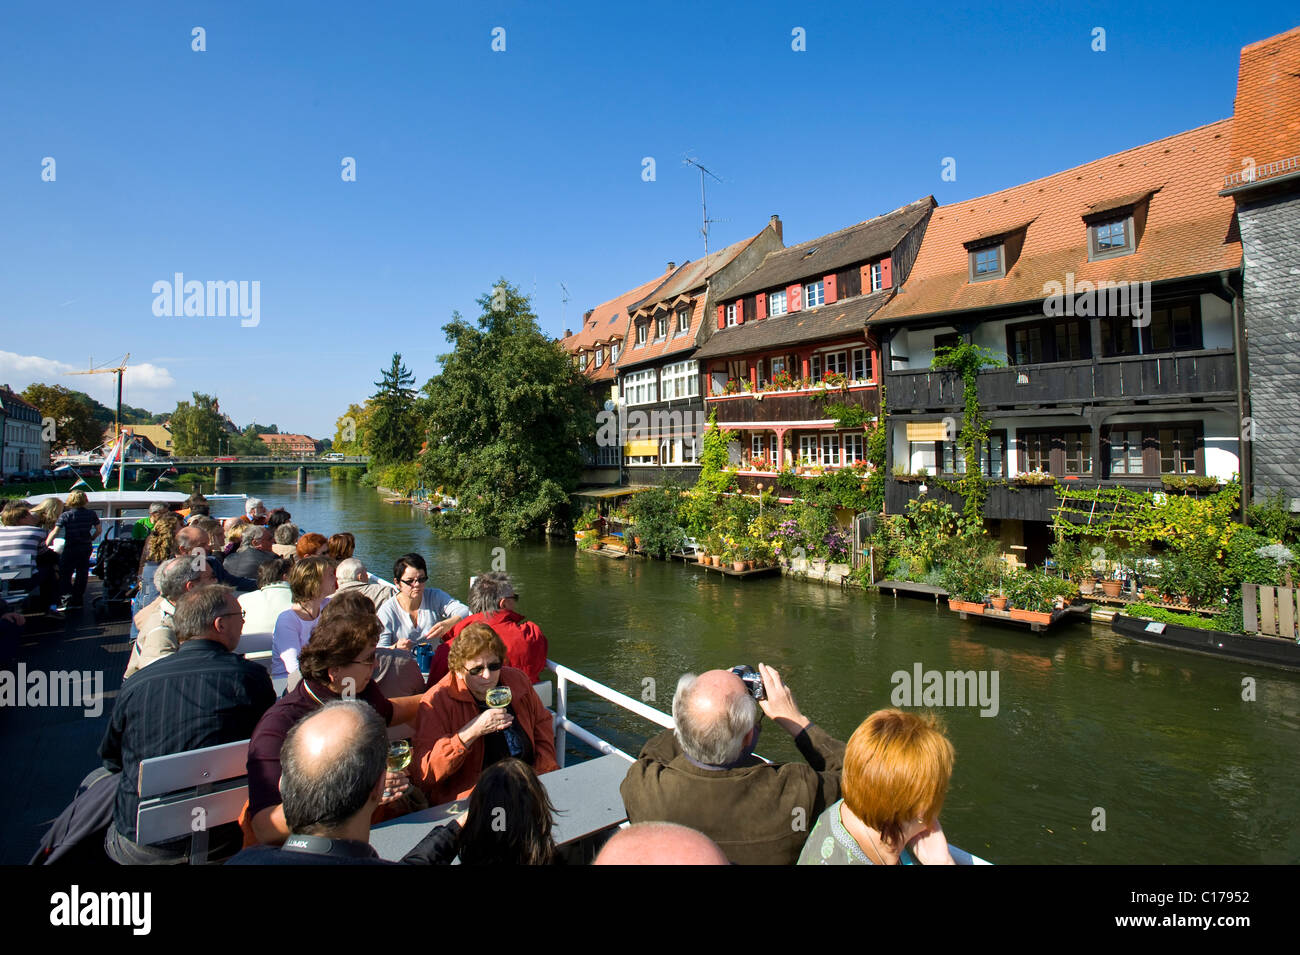 Tourist ship in front of Little Venice, Bamberg, Upper Franconia, Bavaria, Germany, Europe - Stock Image